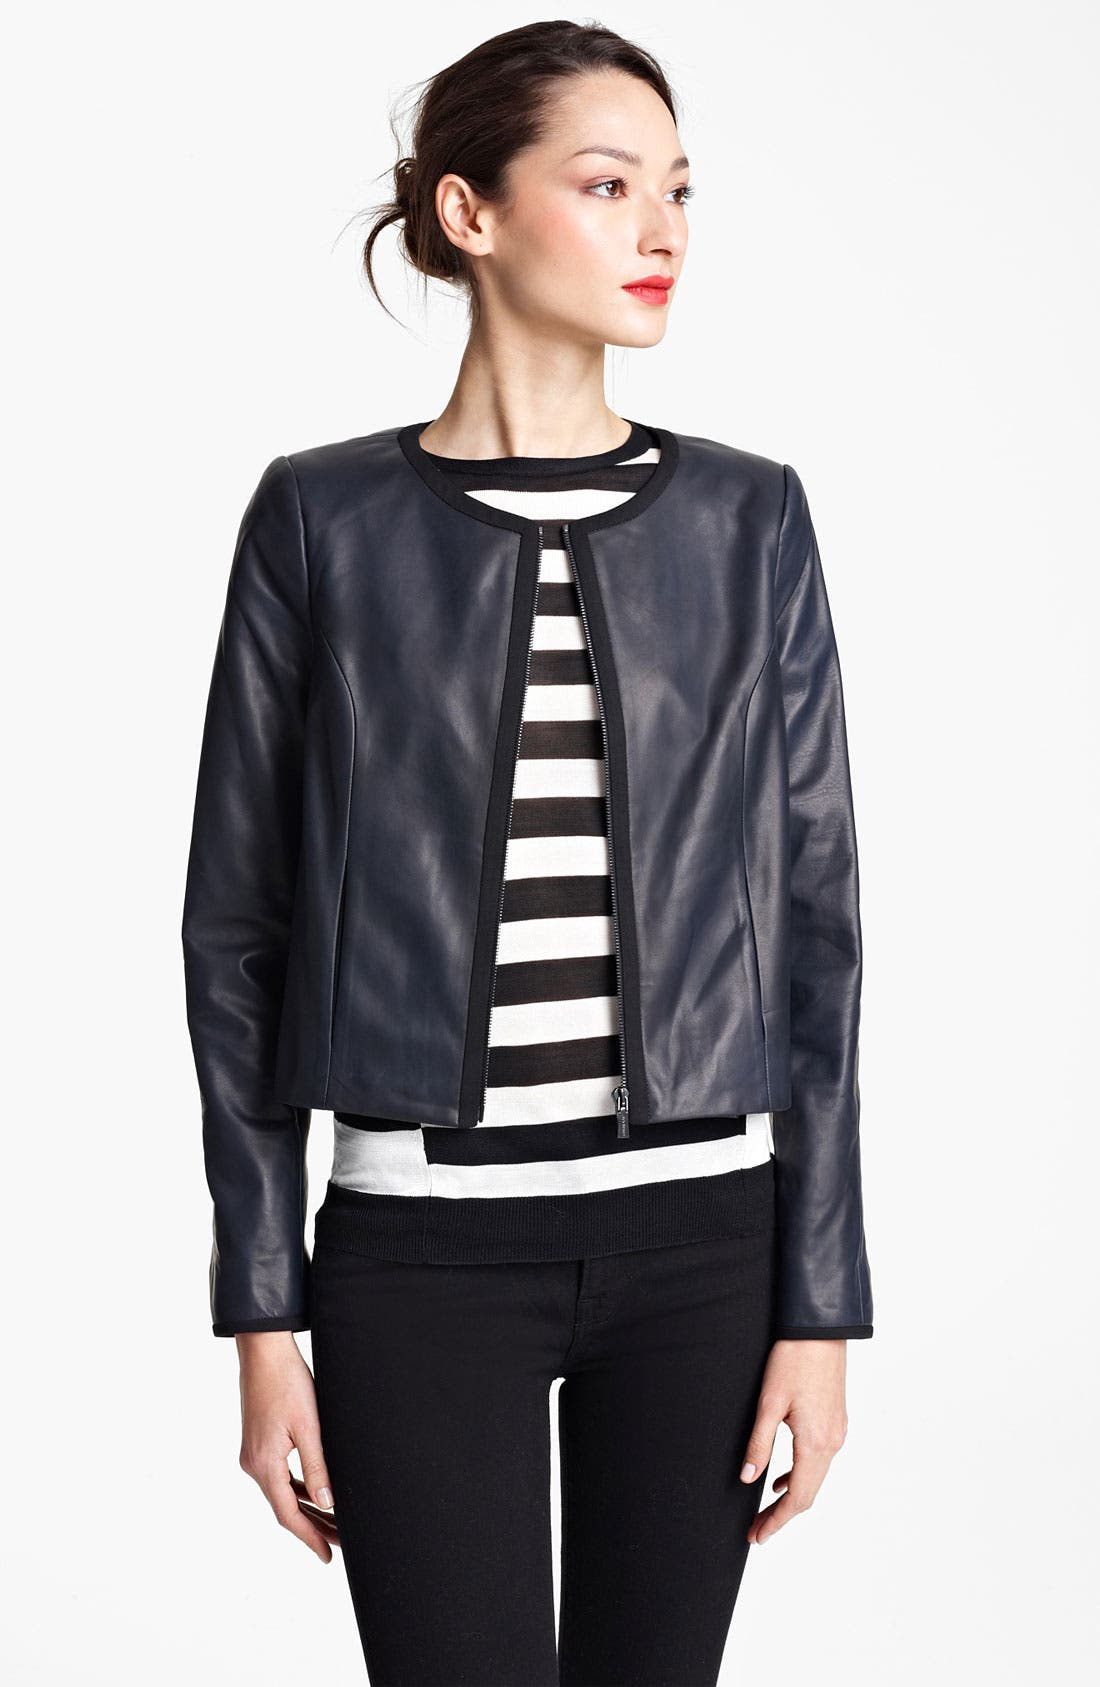 Alternate Image 1 Selected - Jason Wu Nappa Leather Jacket